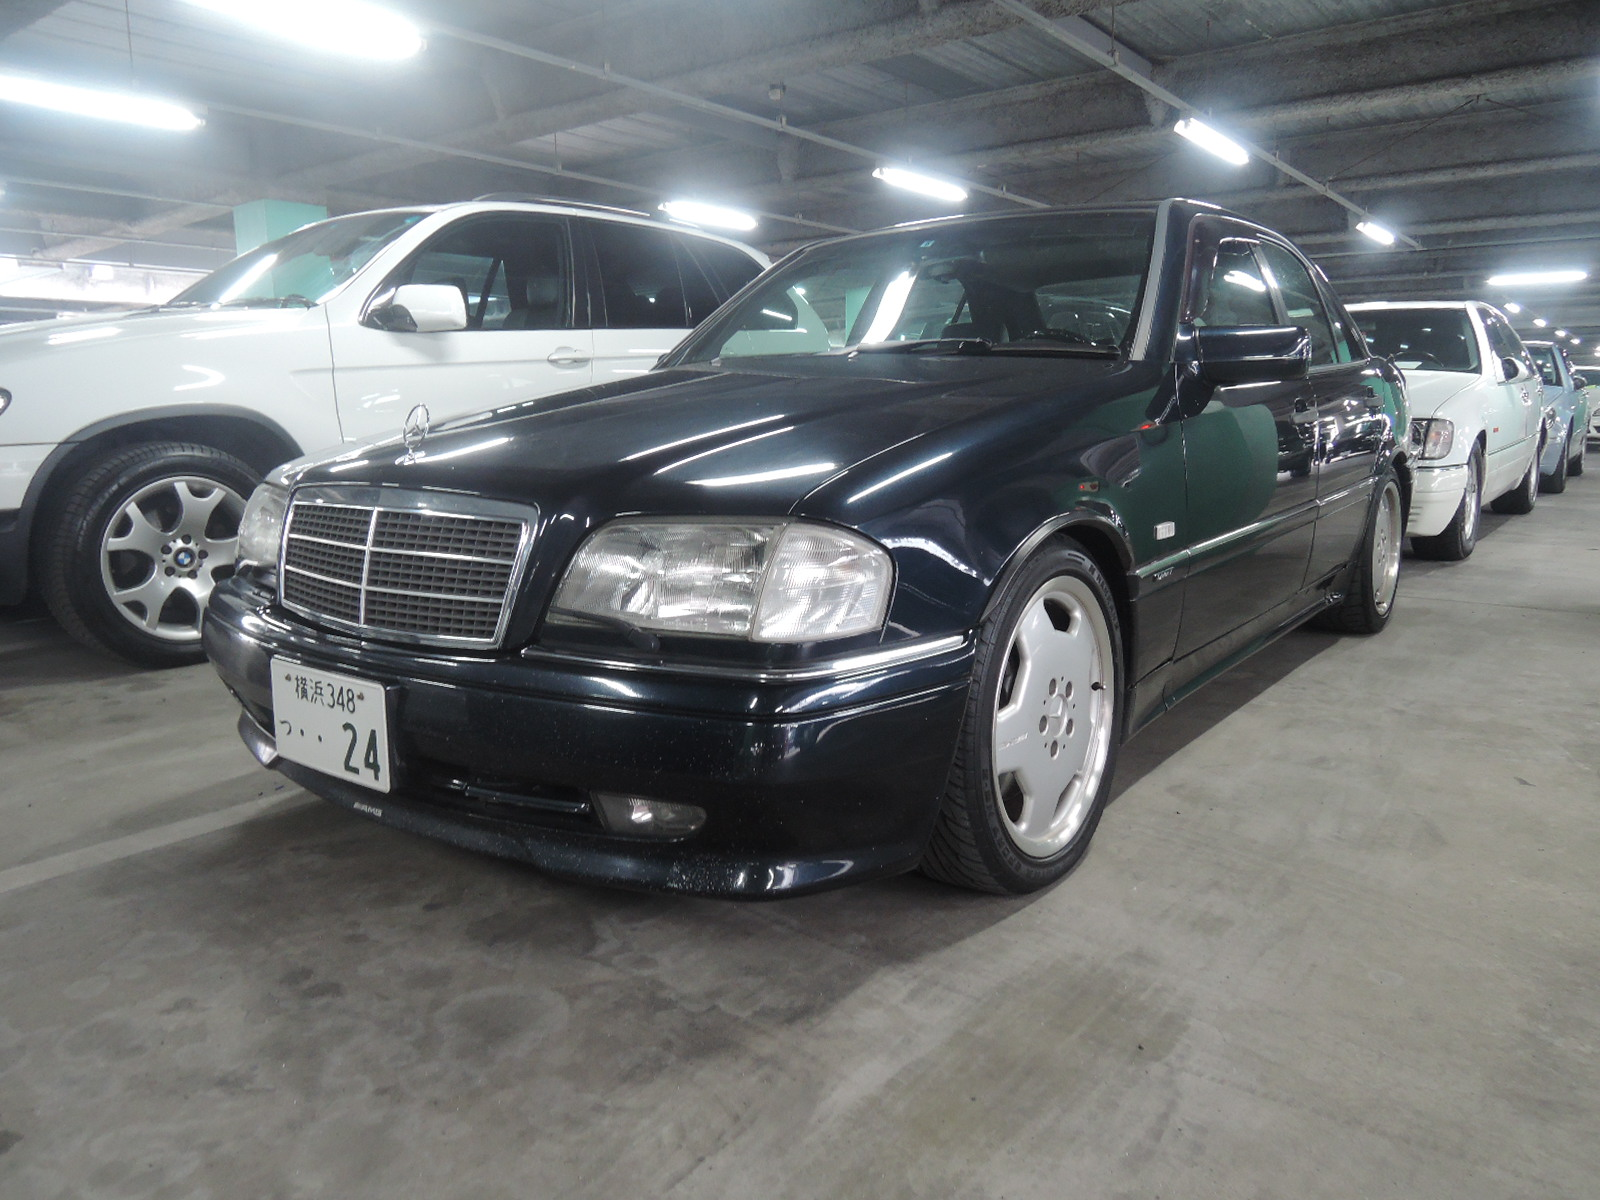 1996 mercedes benz c36 amg photos informations articles for 1996 mercedes benz